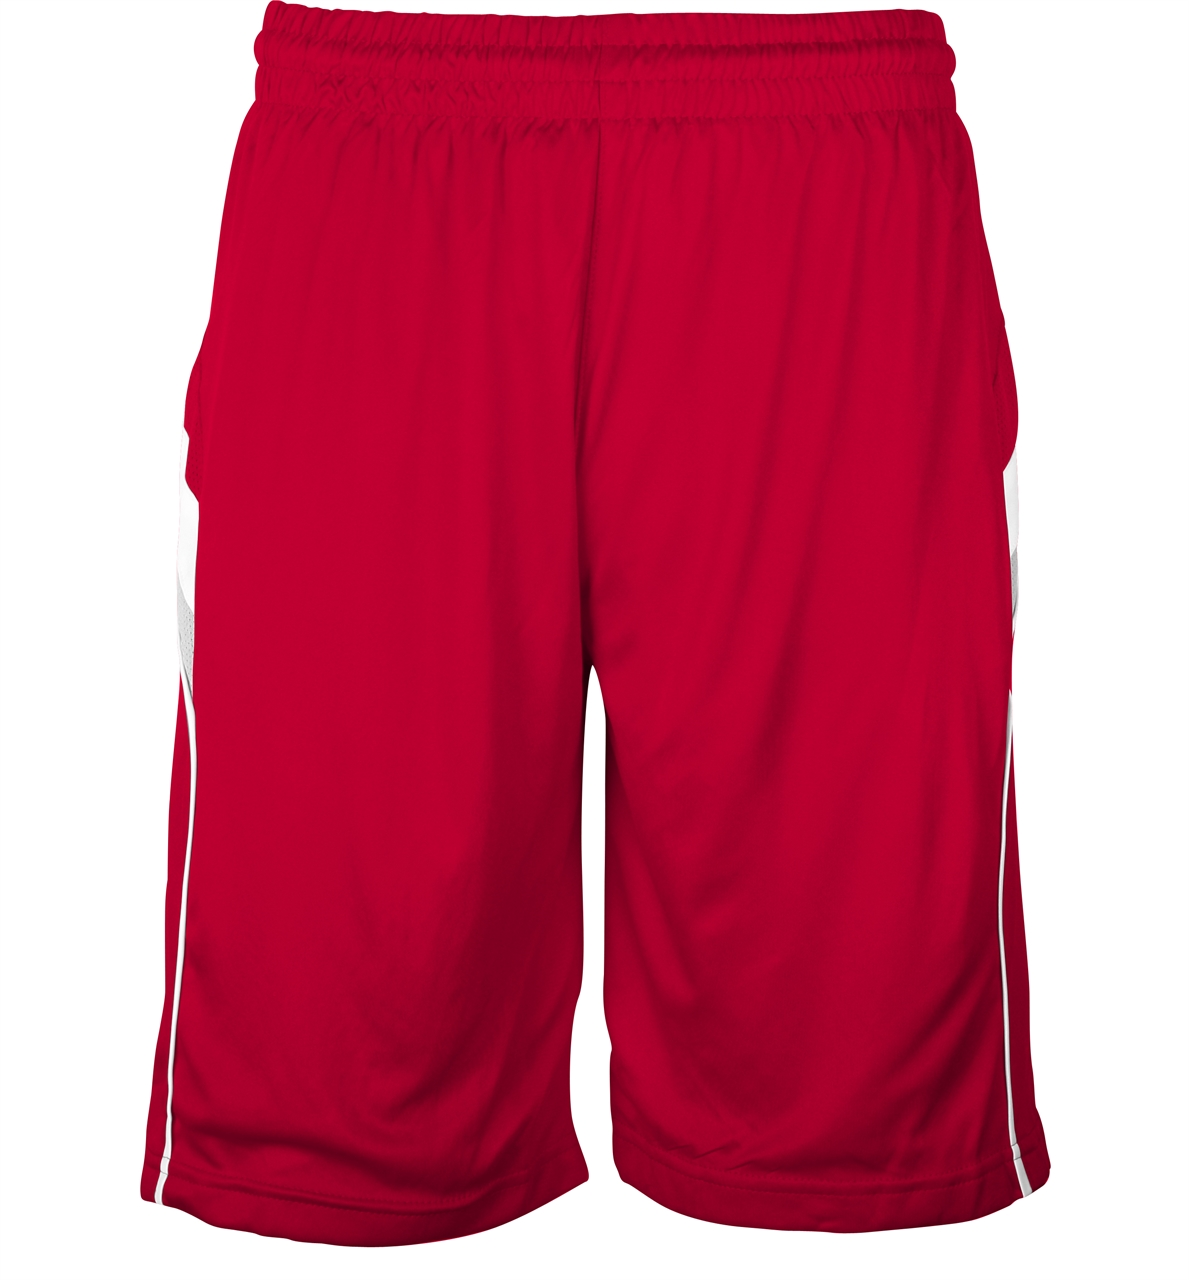 Picture of N3 Sport Dry Fit Youth Basketball Shorts